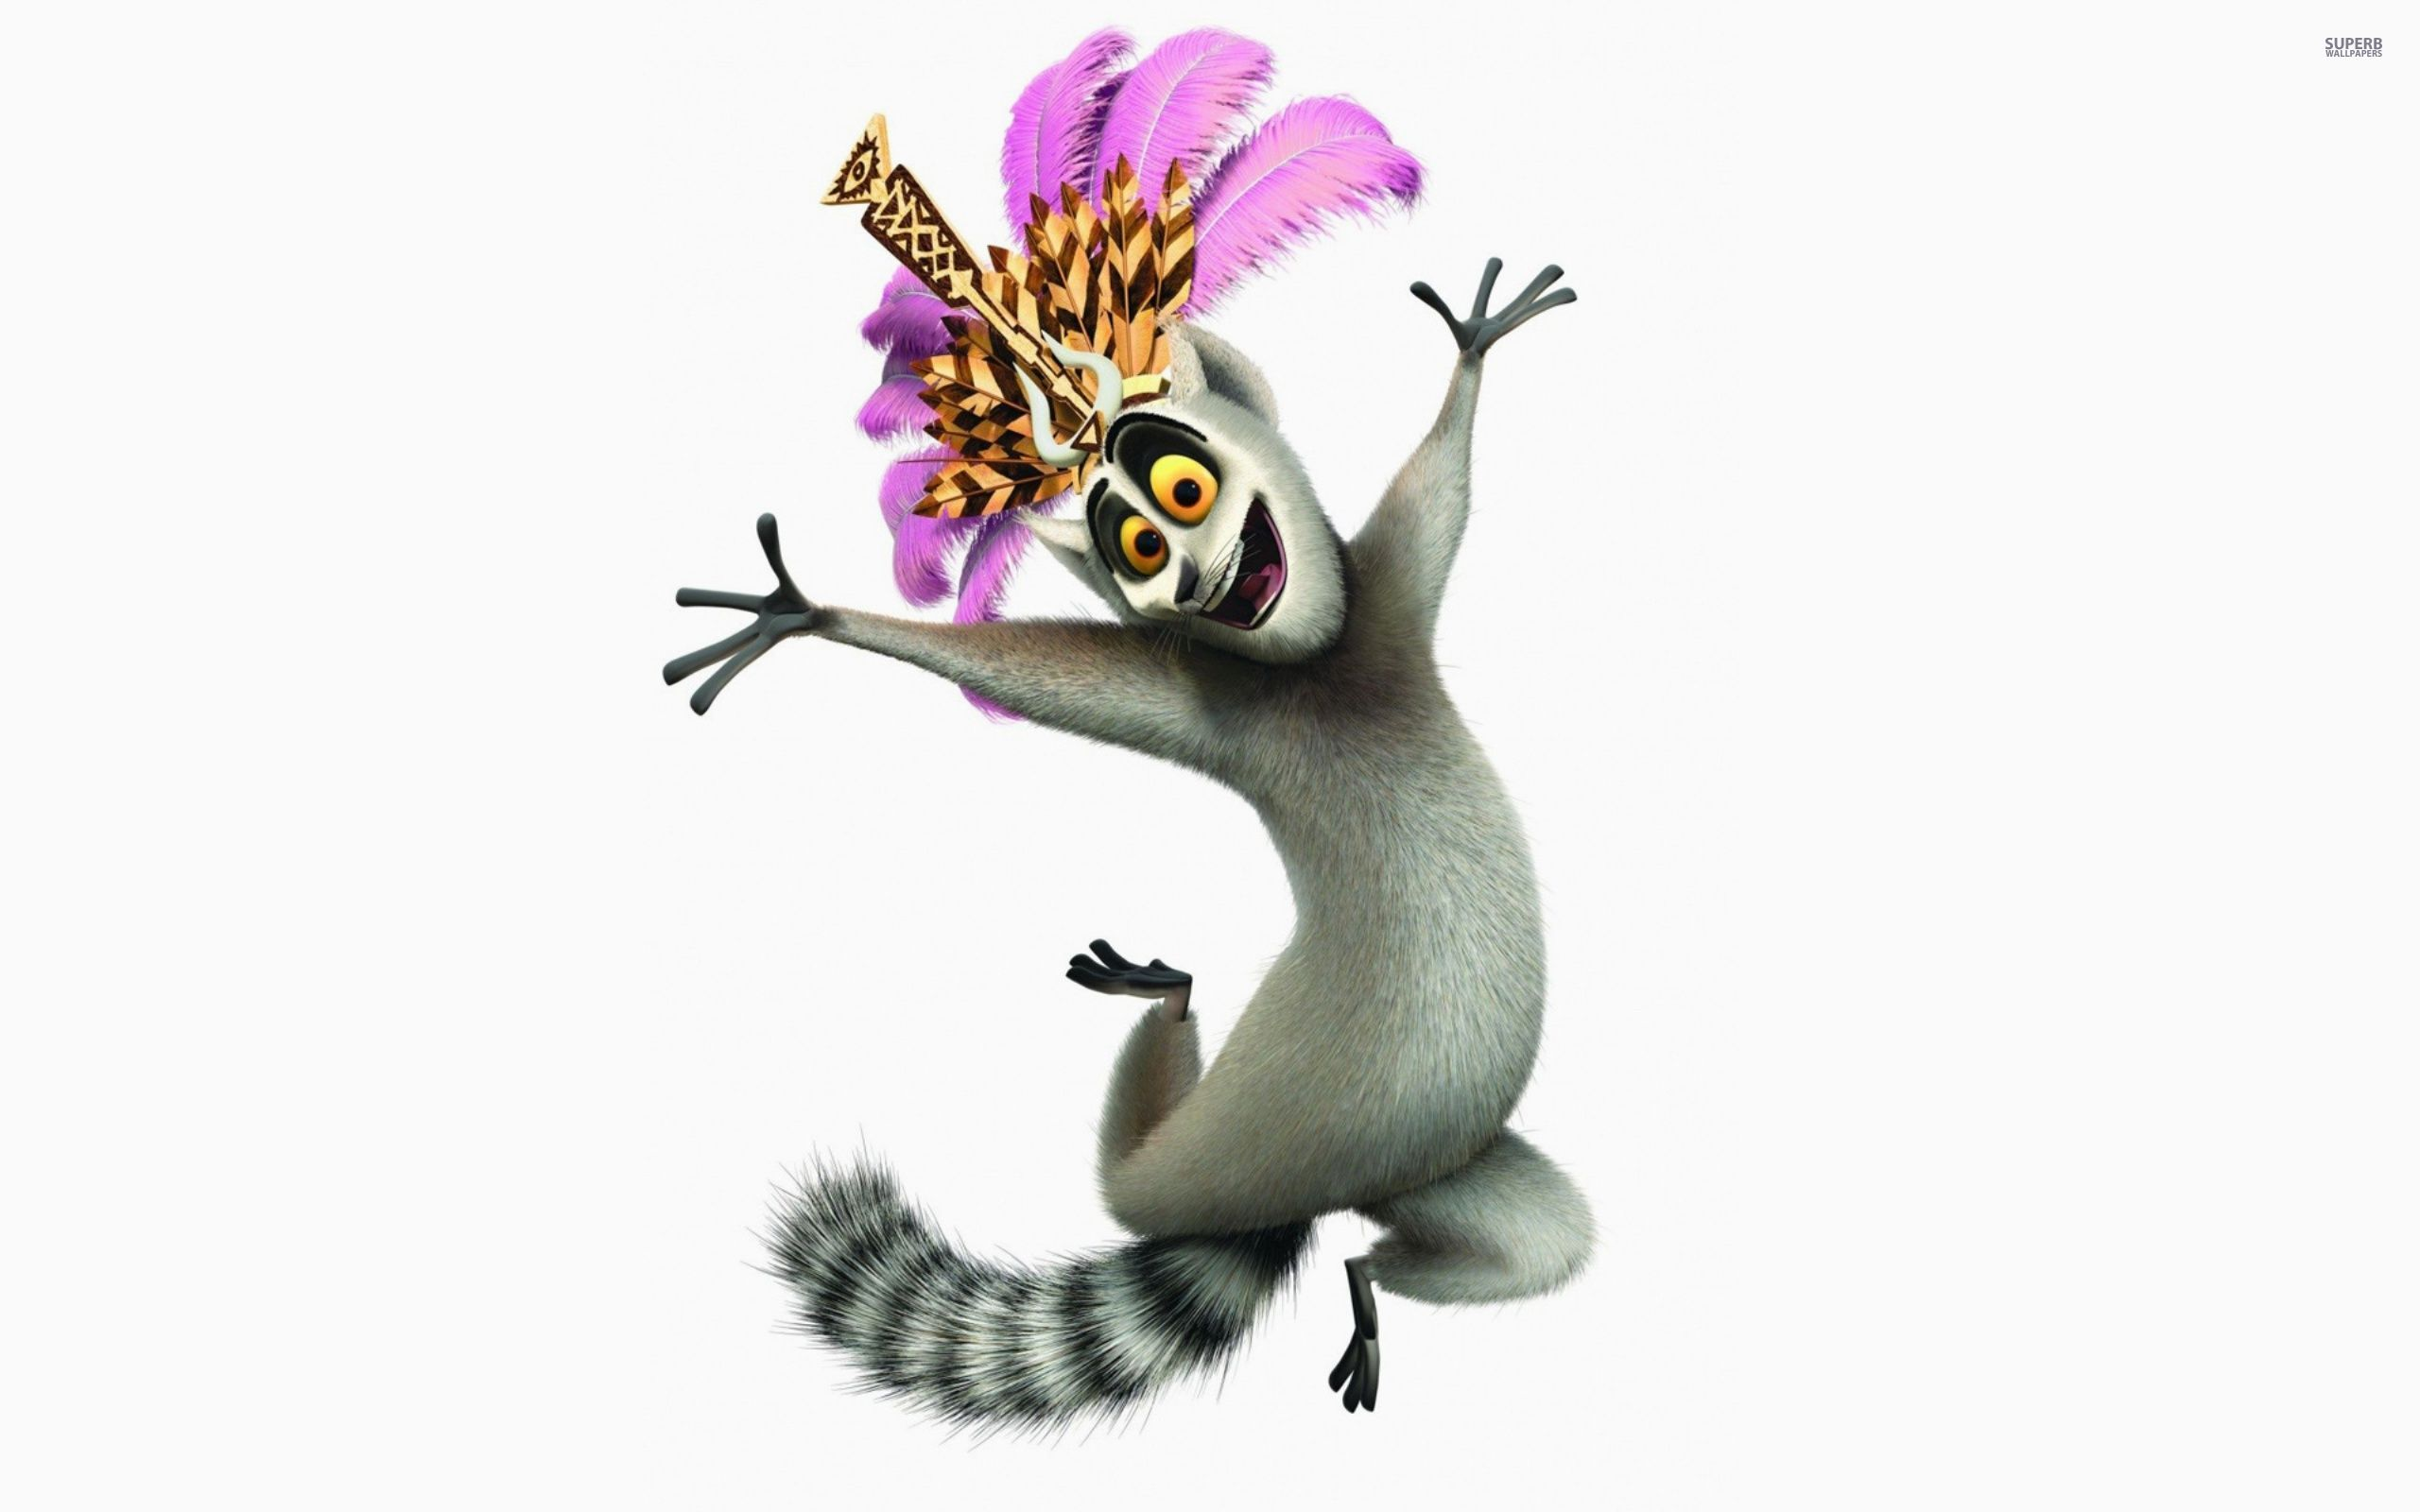 King Julien Madagascar Cartoon